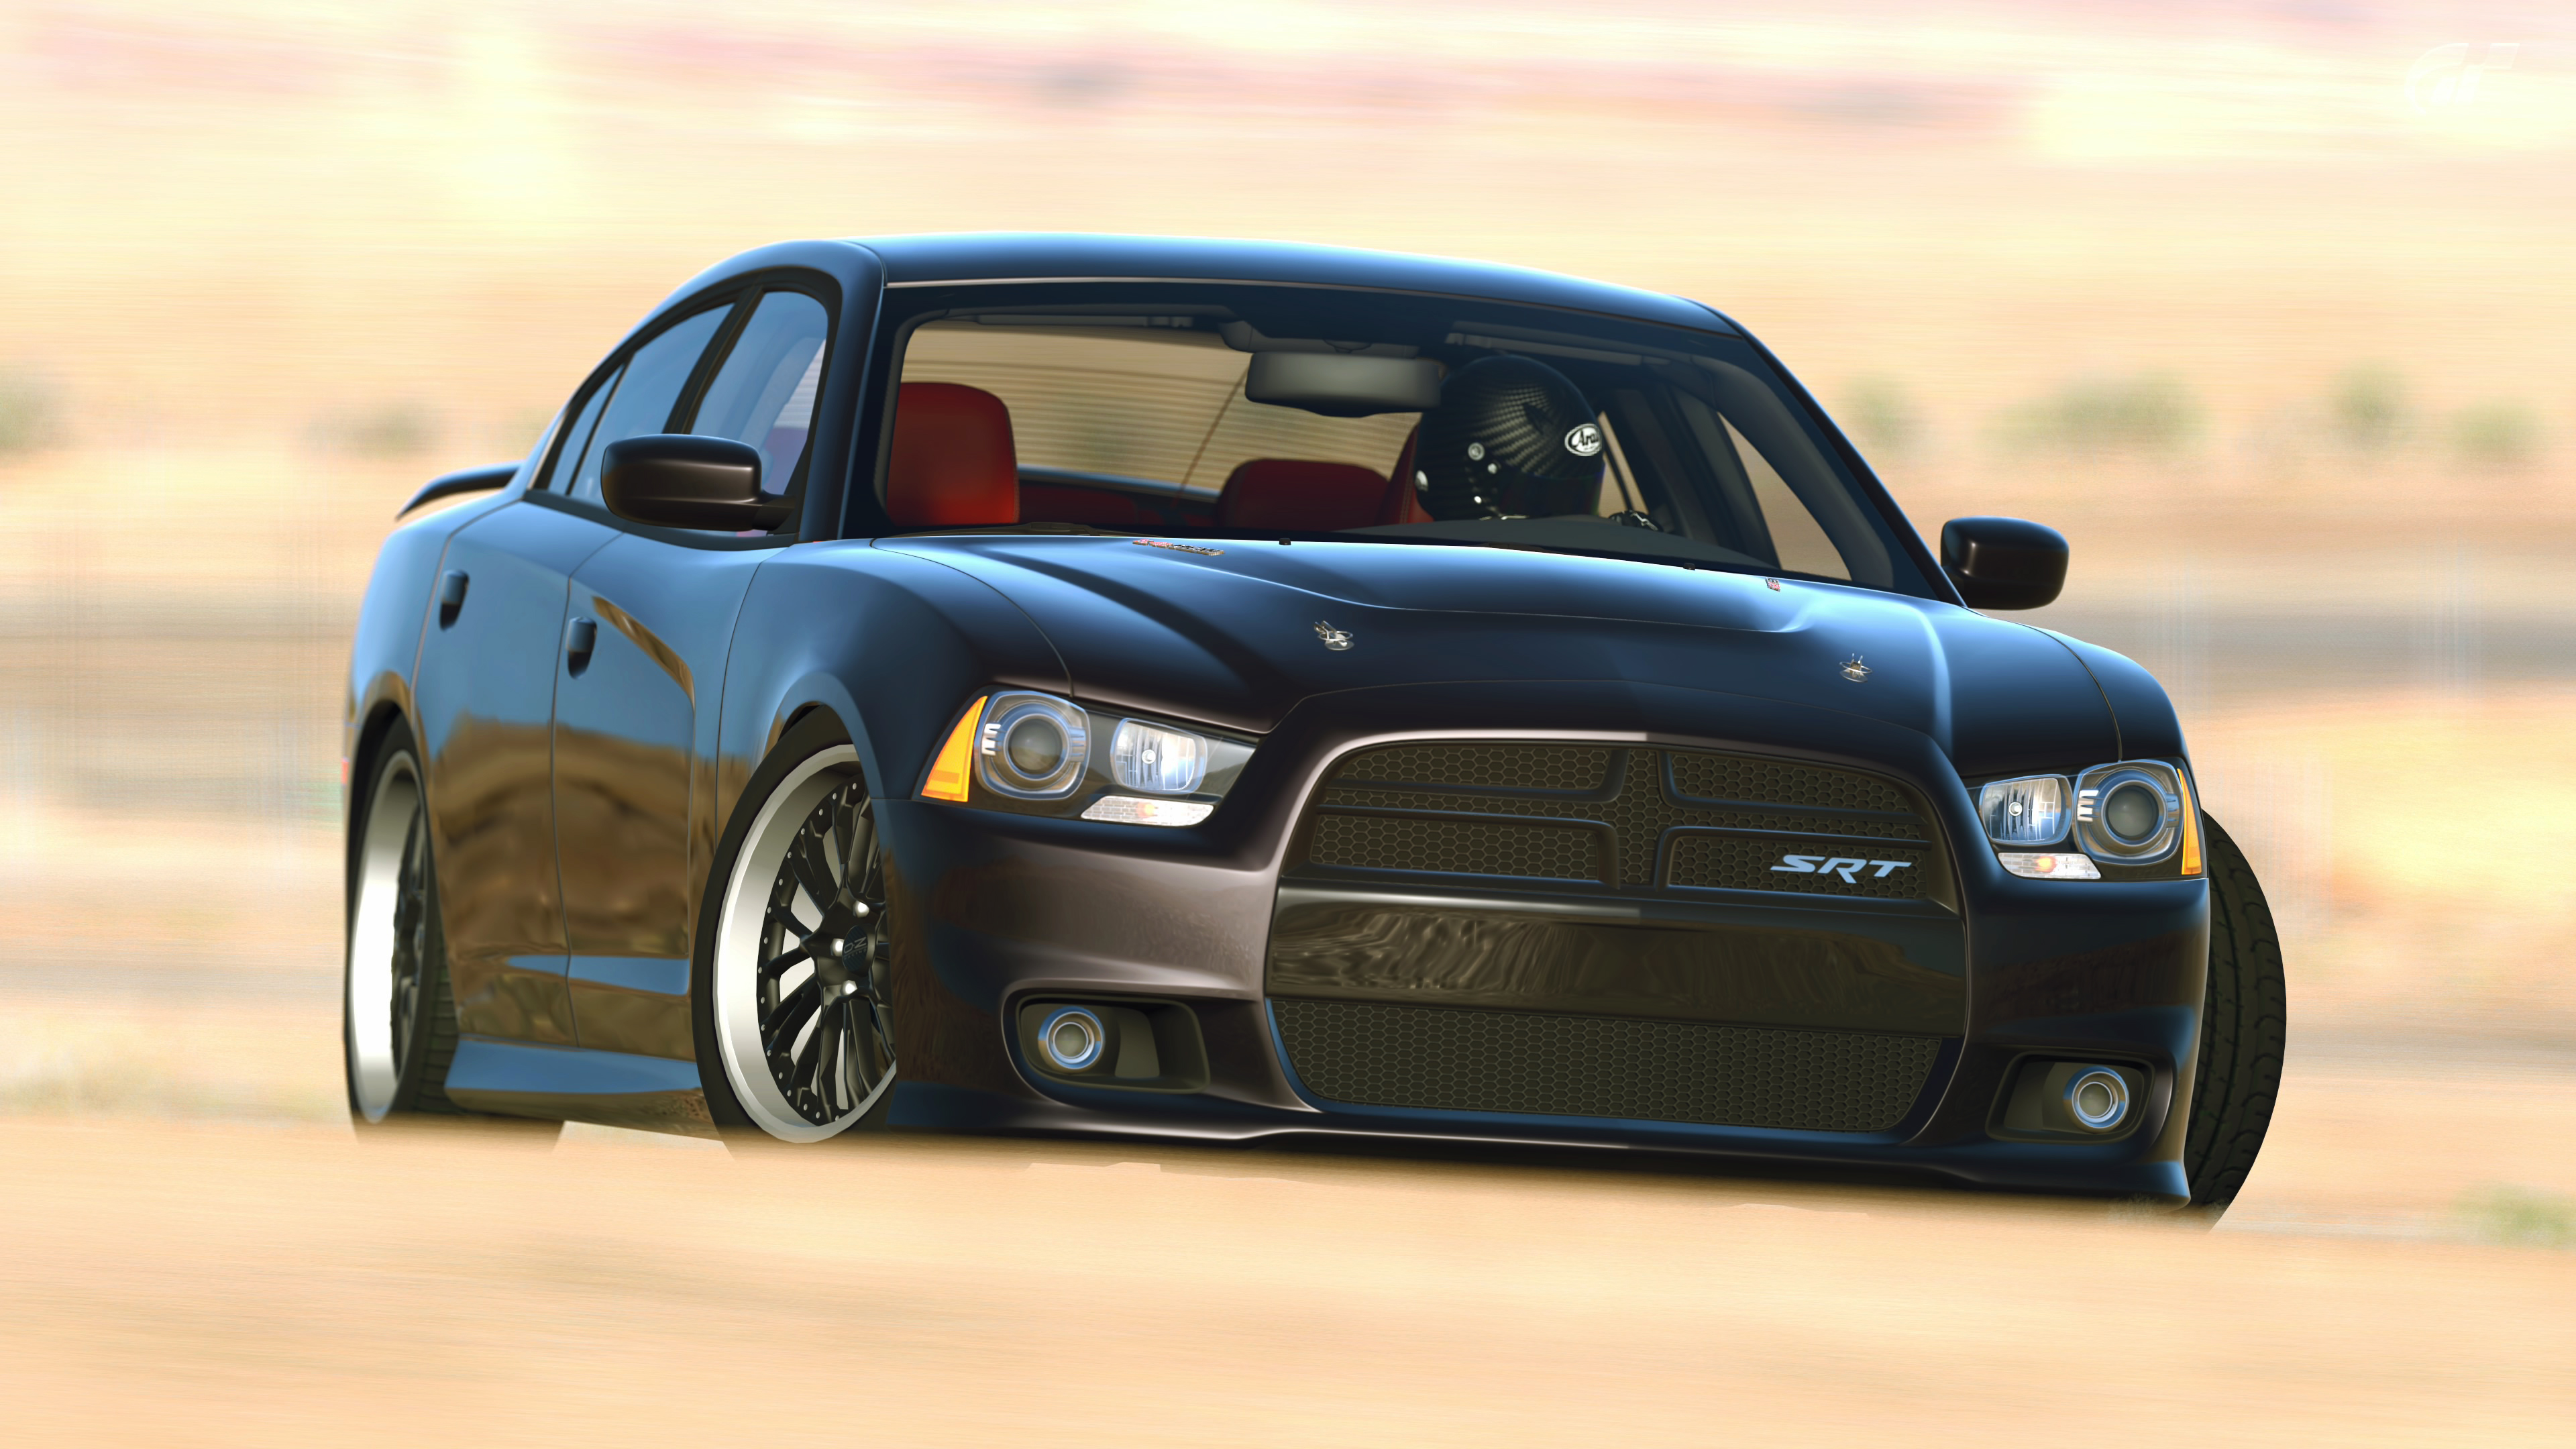 2014 dodge charger srt8 2011 dodge charger srt8 gran. Cars Review. Best American Auto & Cars Review